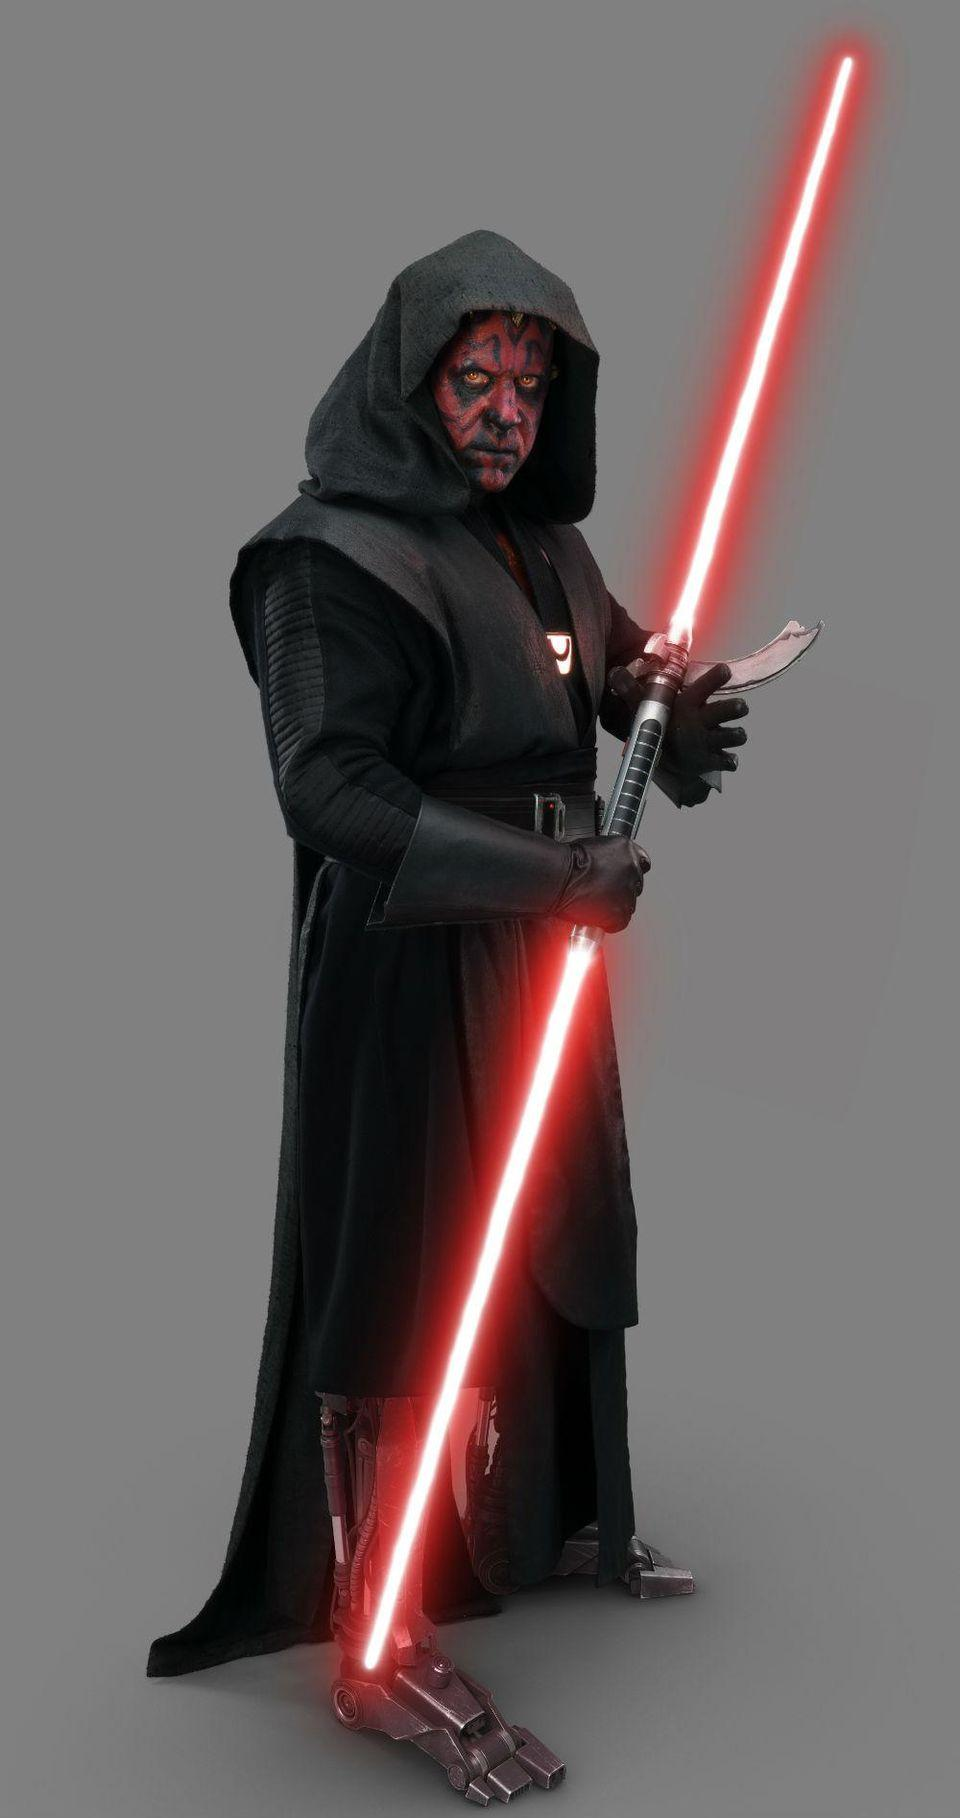 In Solo, Maul is seen, in a hologram, with the same lightsaber he'll later use in Rebels.